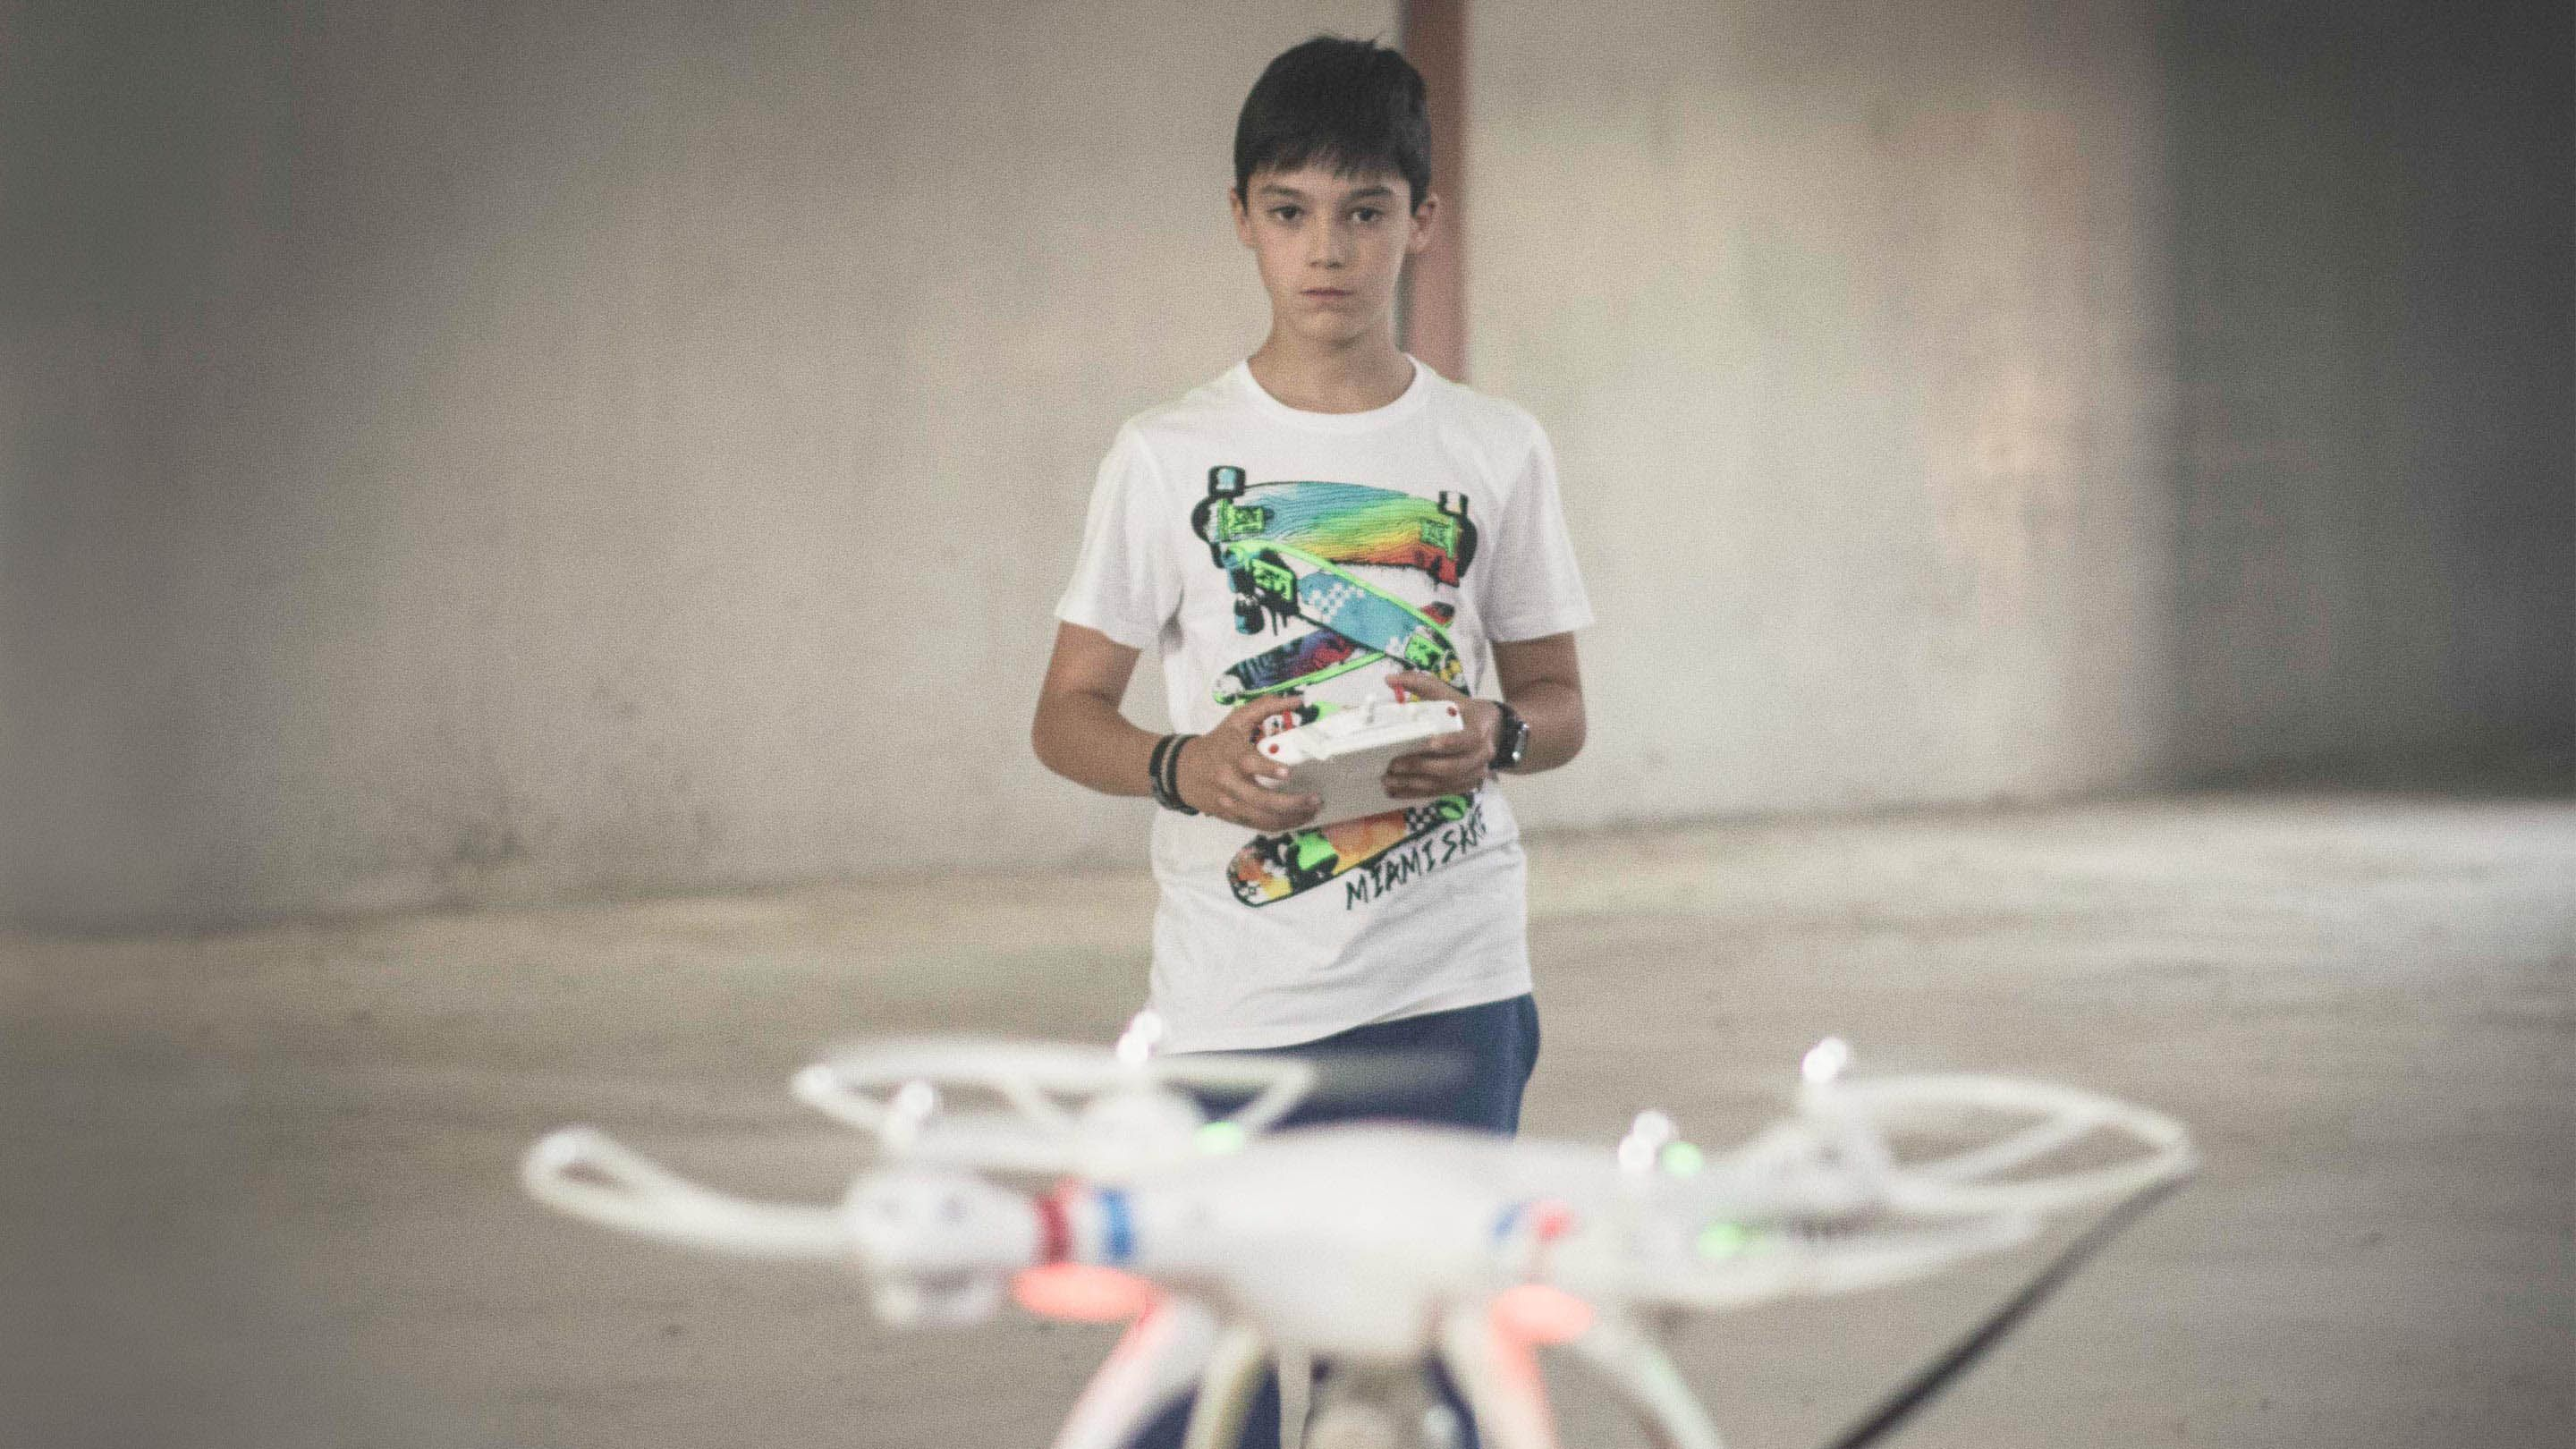 Drones Can Be Fun—and Educational